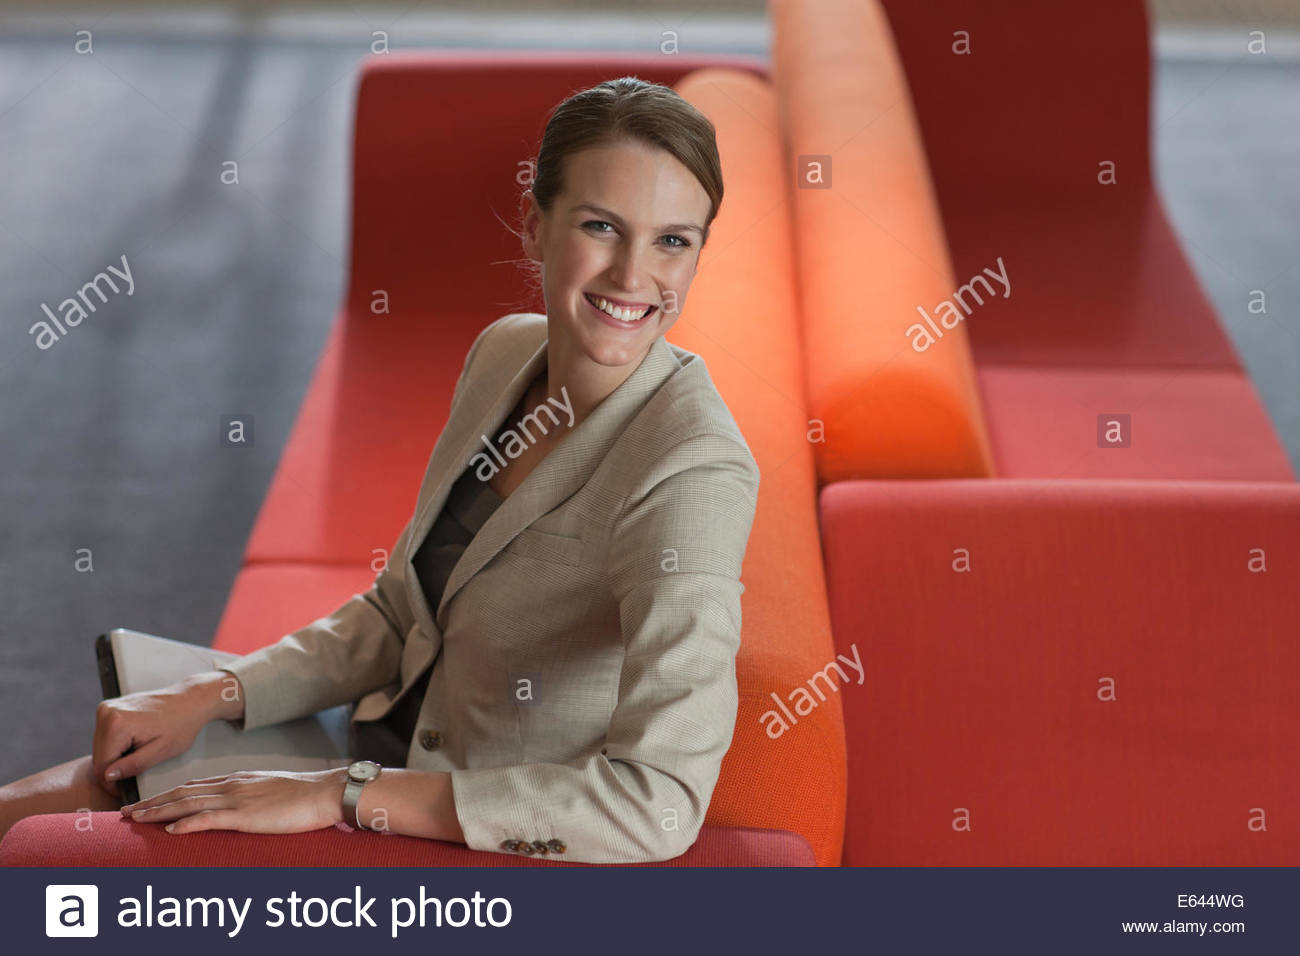 Businesswoman with laptop in waiting area - Stock Image